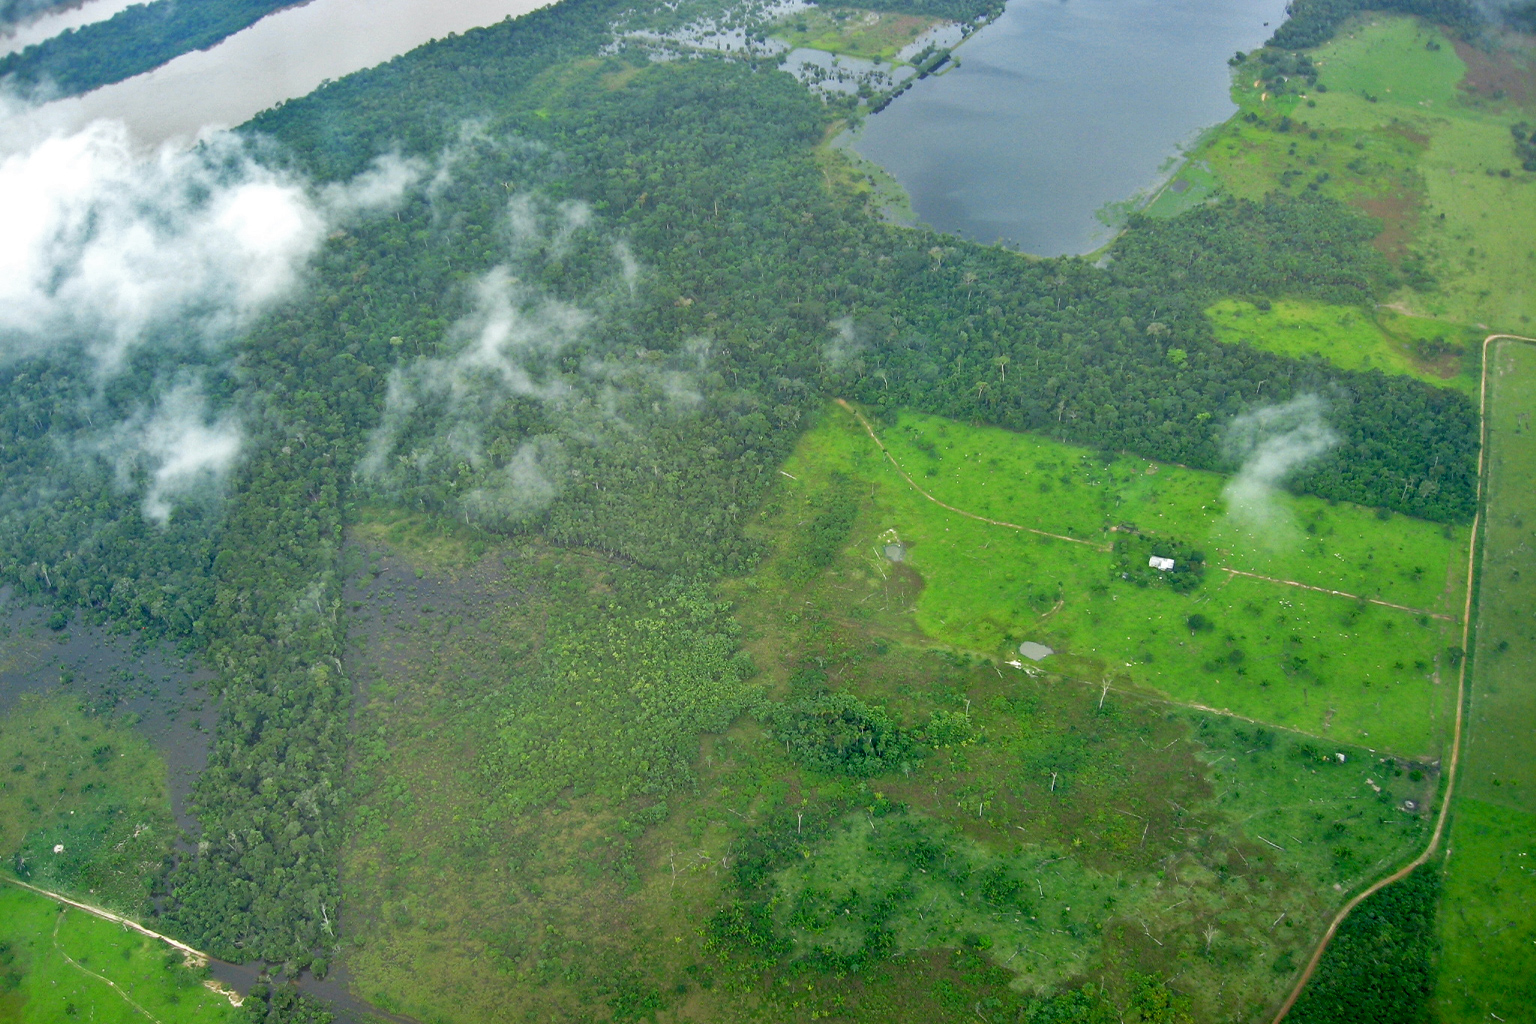 Aerial view of the Brazilian Amazon [or deforestation in the Brazilian Amazon] taken from the small aircraft used to measure carbon emissions. Photo courtesy of Luciana Gatti.